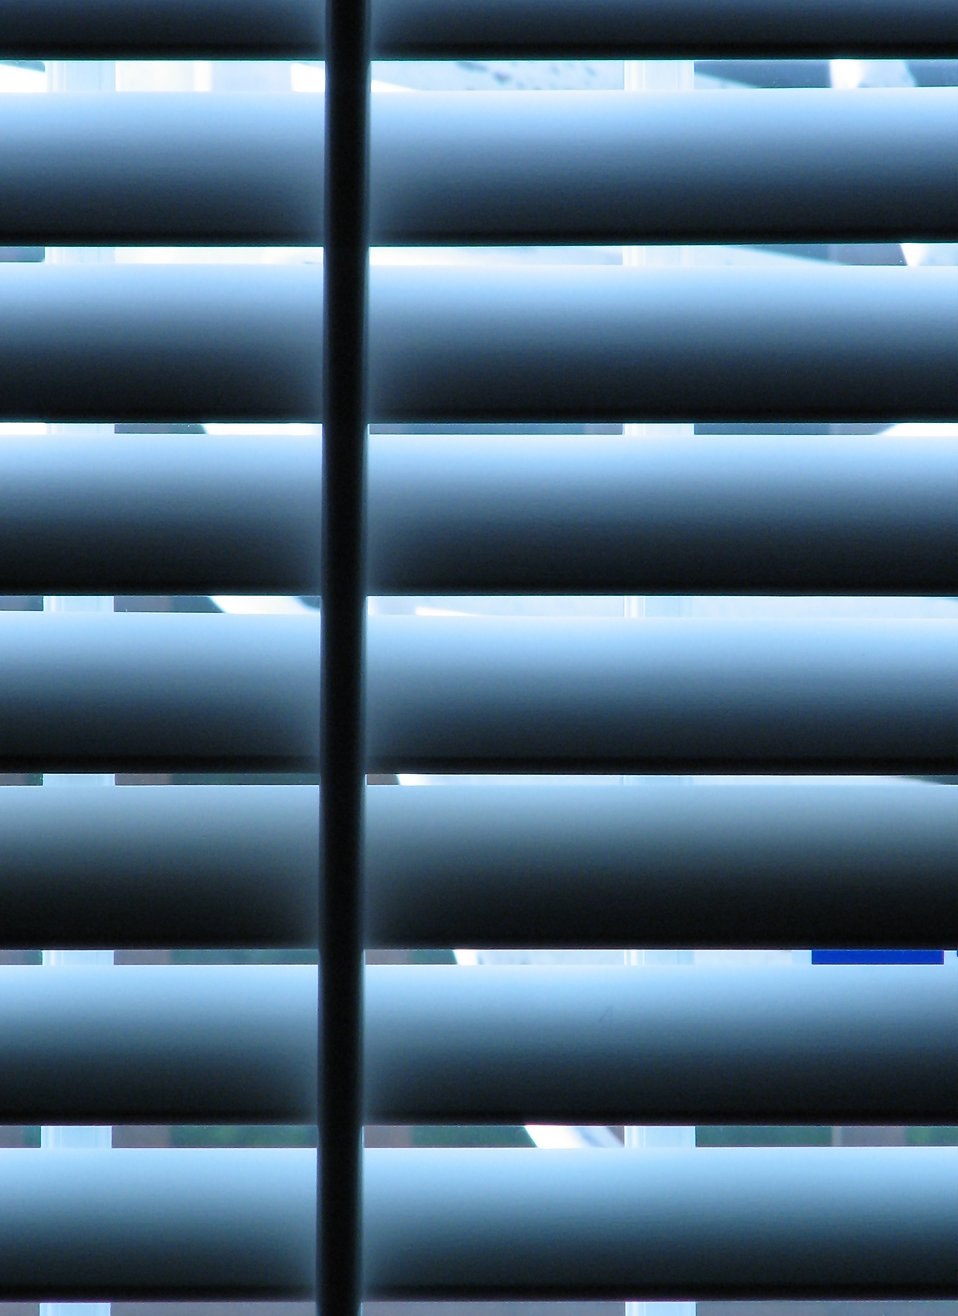 Backlit window blinds : Free Stock Photo